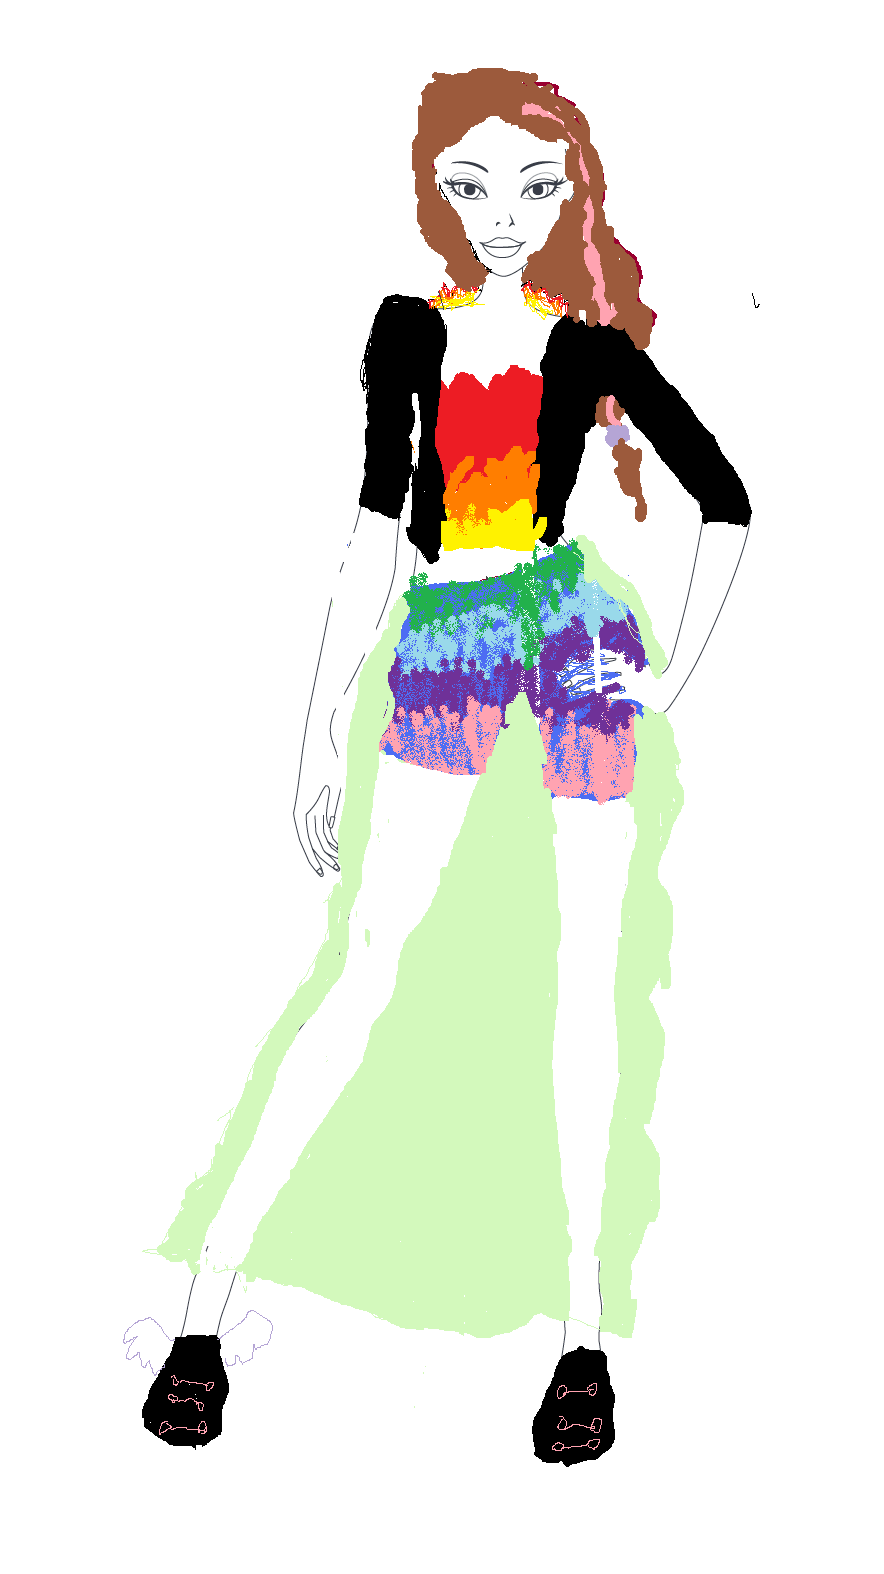 ask me what my style me up entries looked like so here is what they  look like ( BTW they arent very good cause im bad at designs on a computer)